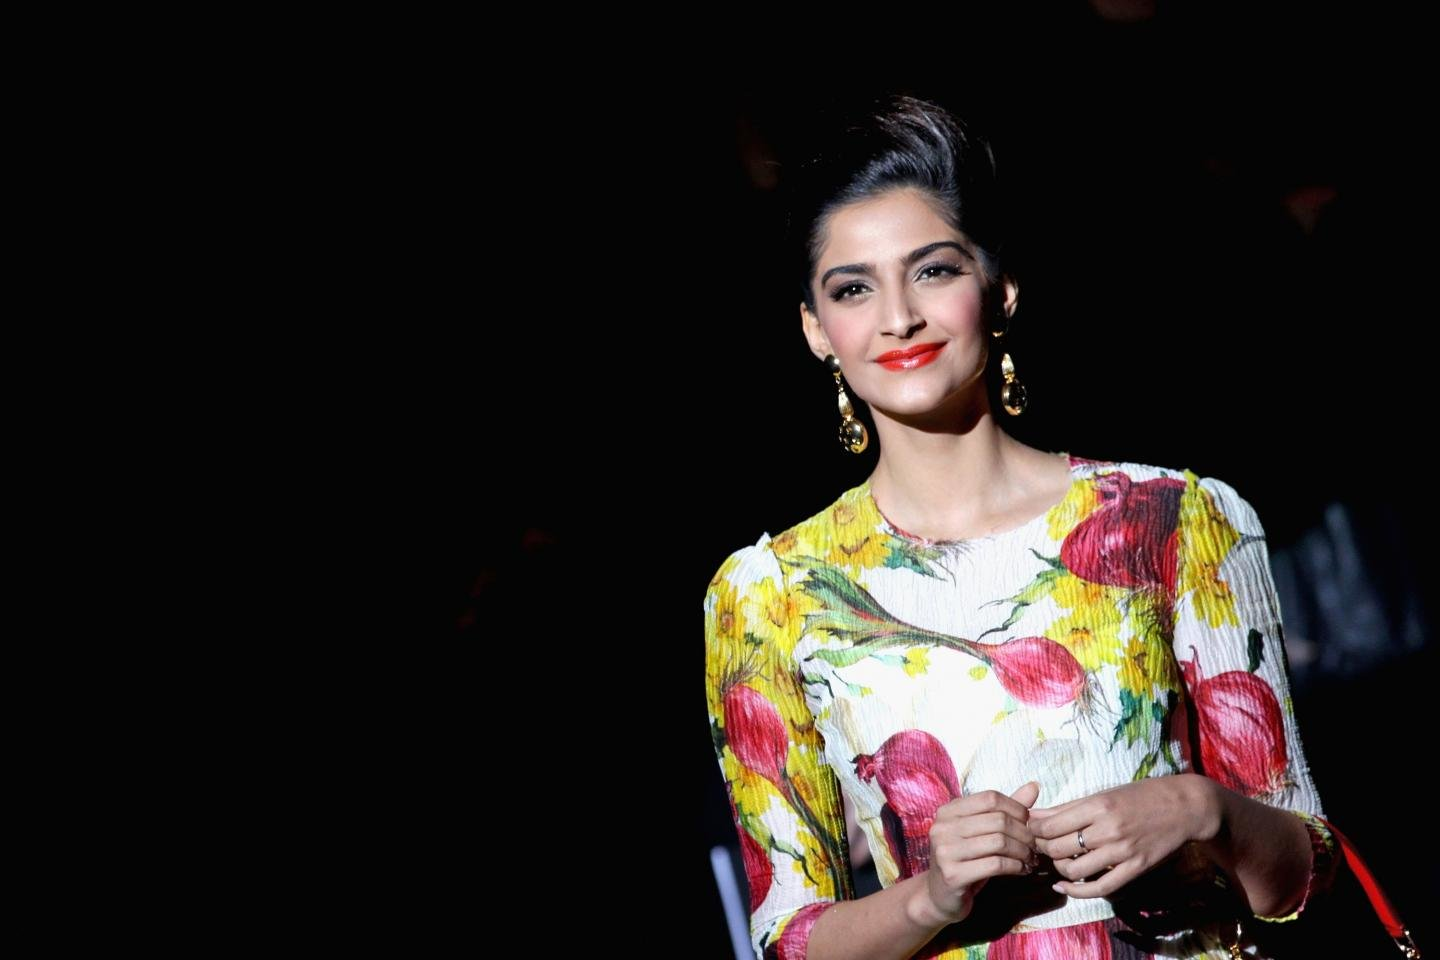 Free download Sonam Kapoor background ID:429951 hd 1440x960 for desktop